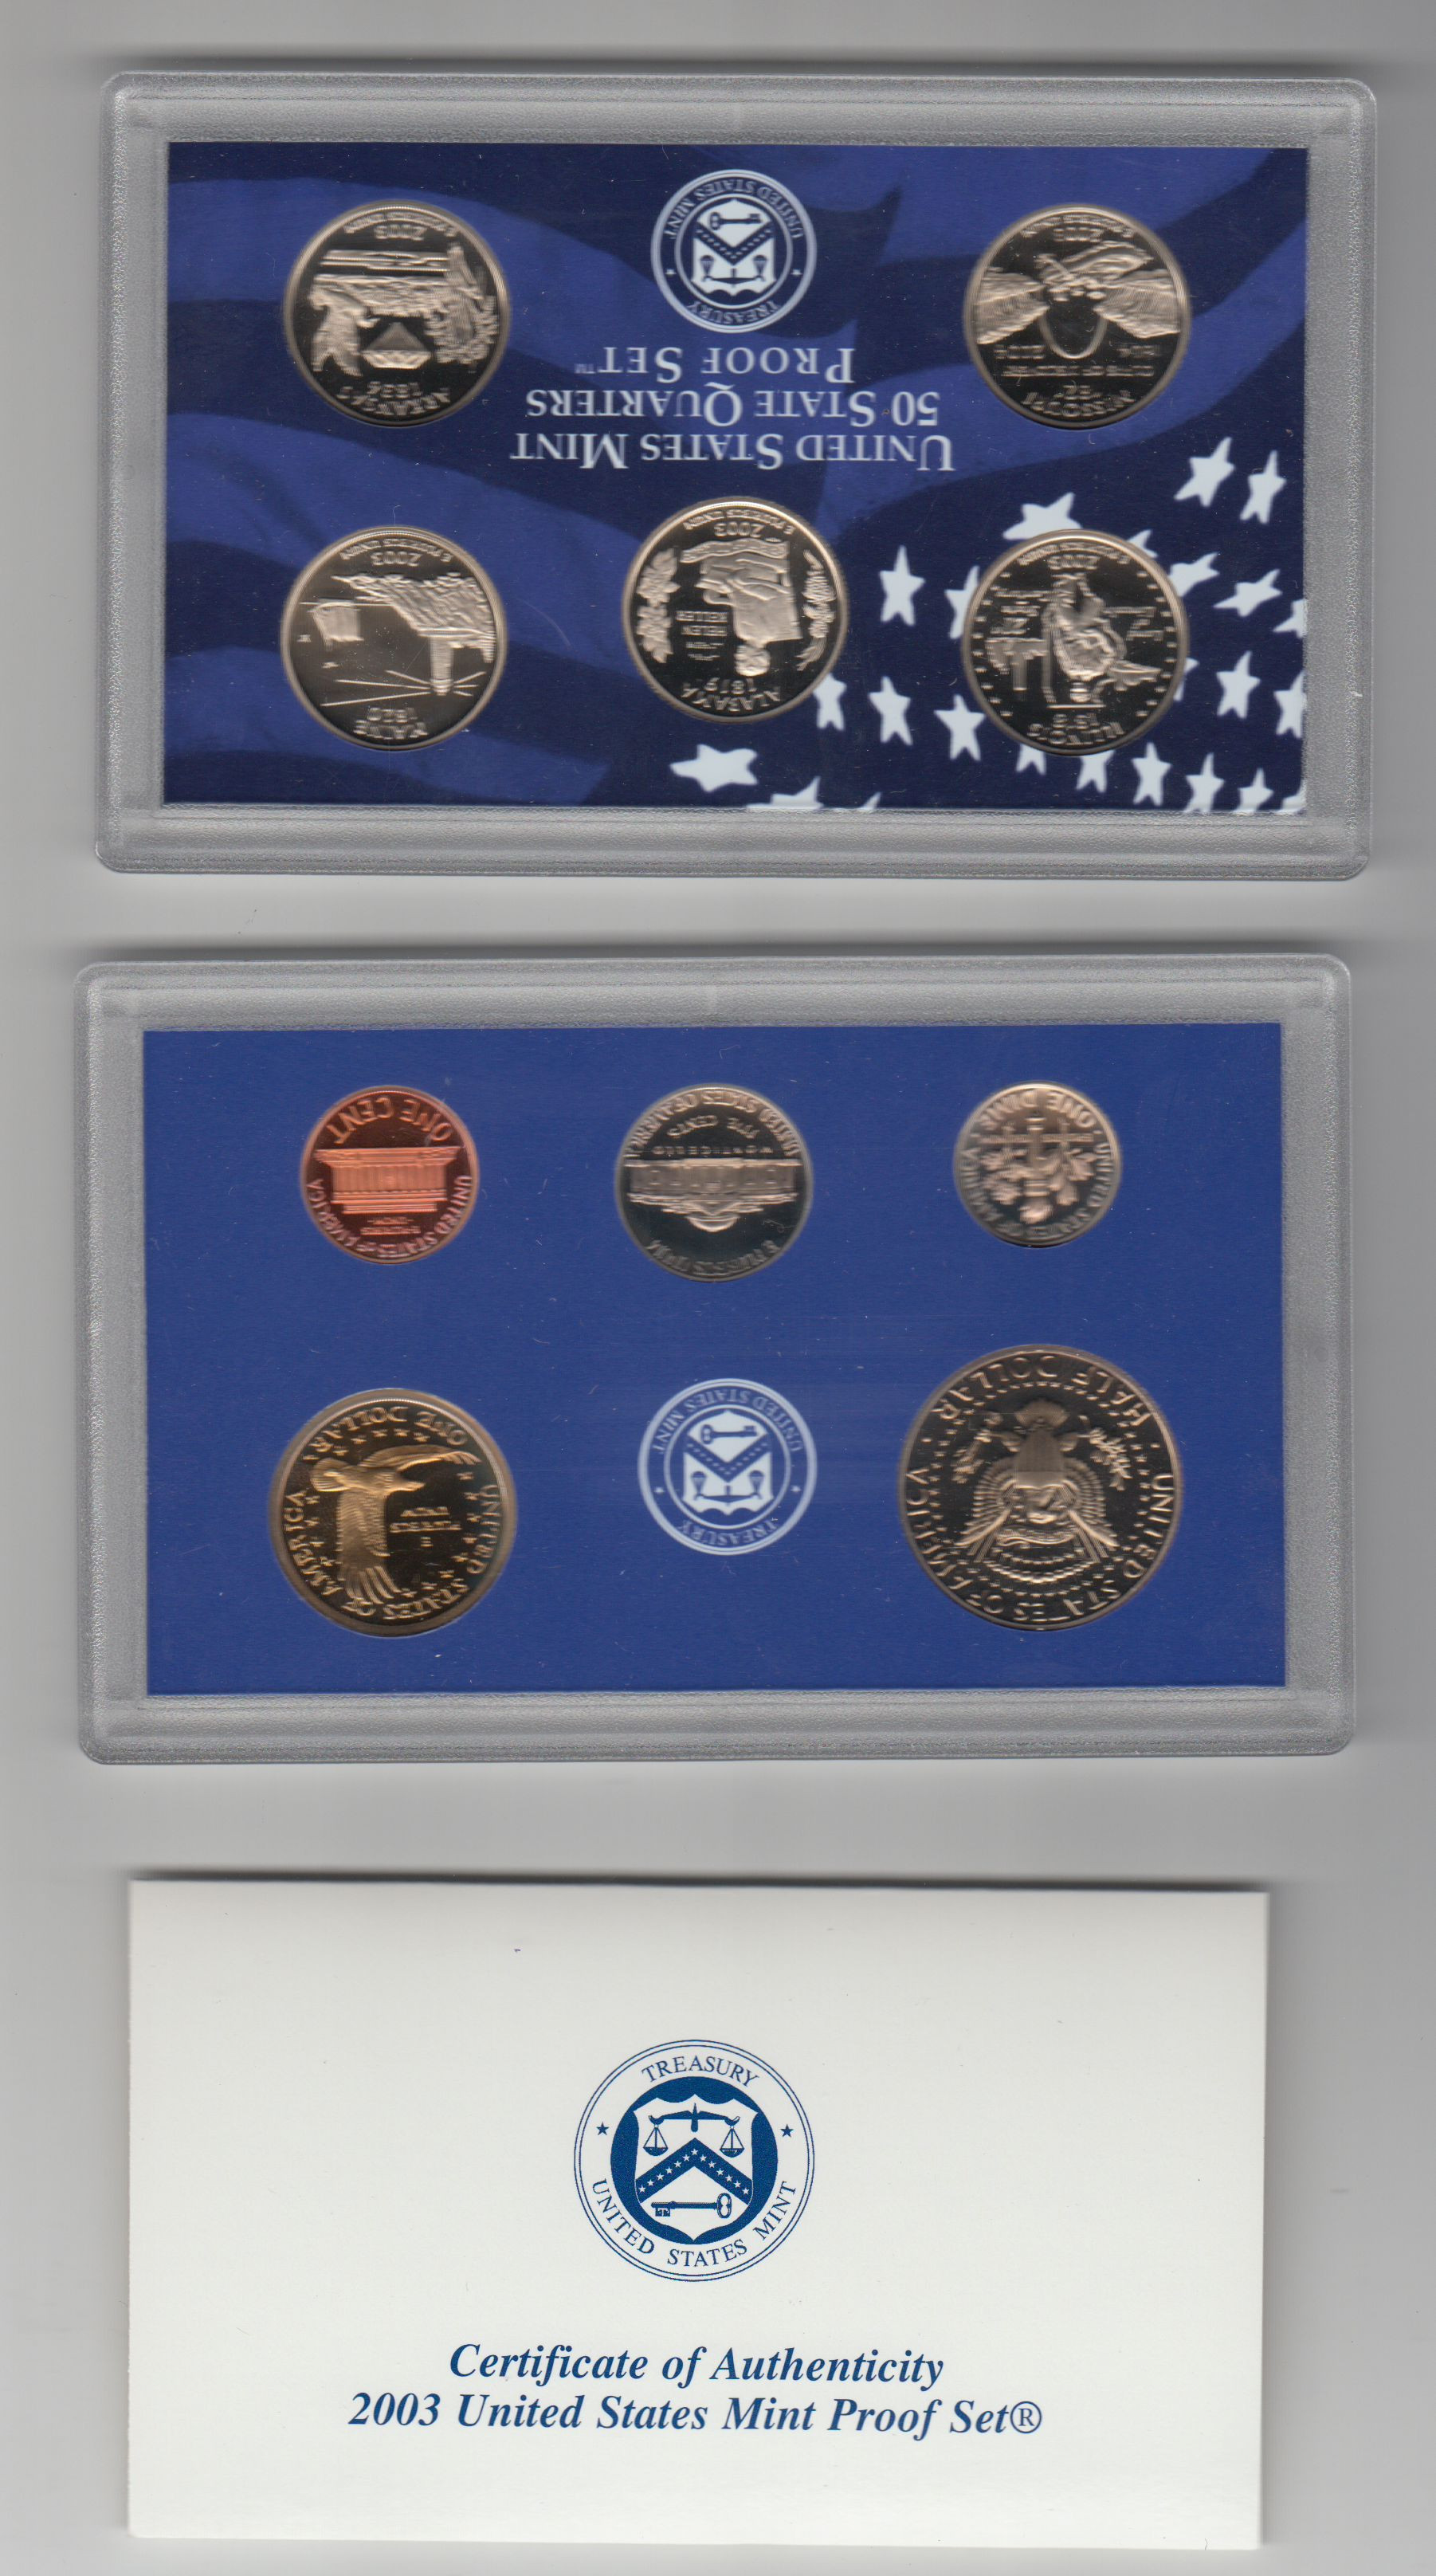 Lovely Value Of Usa 10 Coins 50 State Quarters Proof Set Us Mint State Quarter Set Value Of New Washington 50 State Quarters Program 1999 2008 State Quarter Set Value